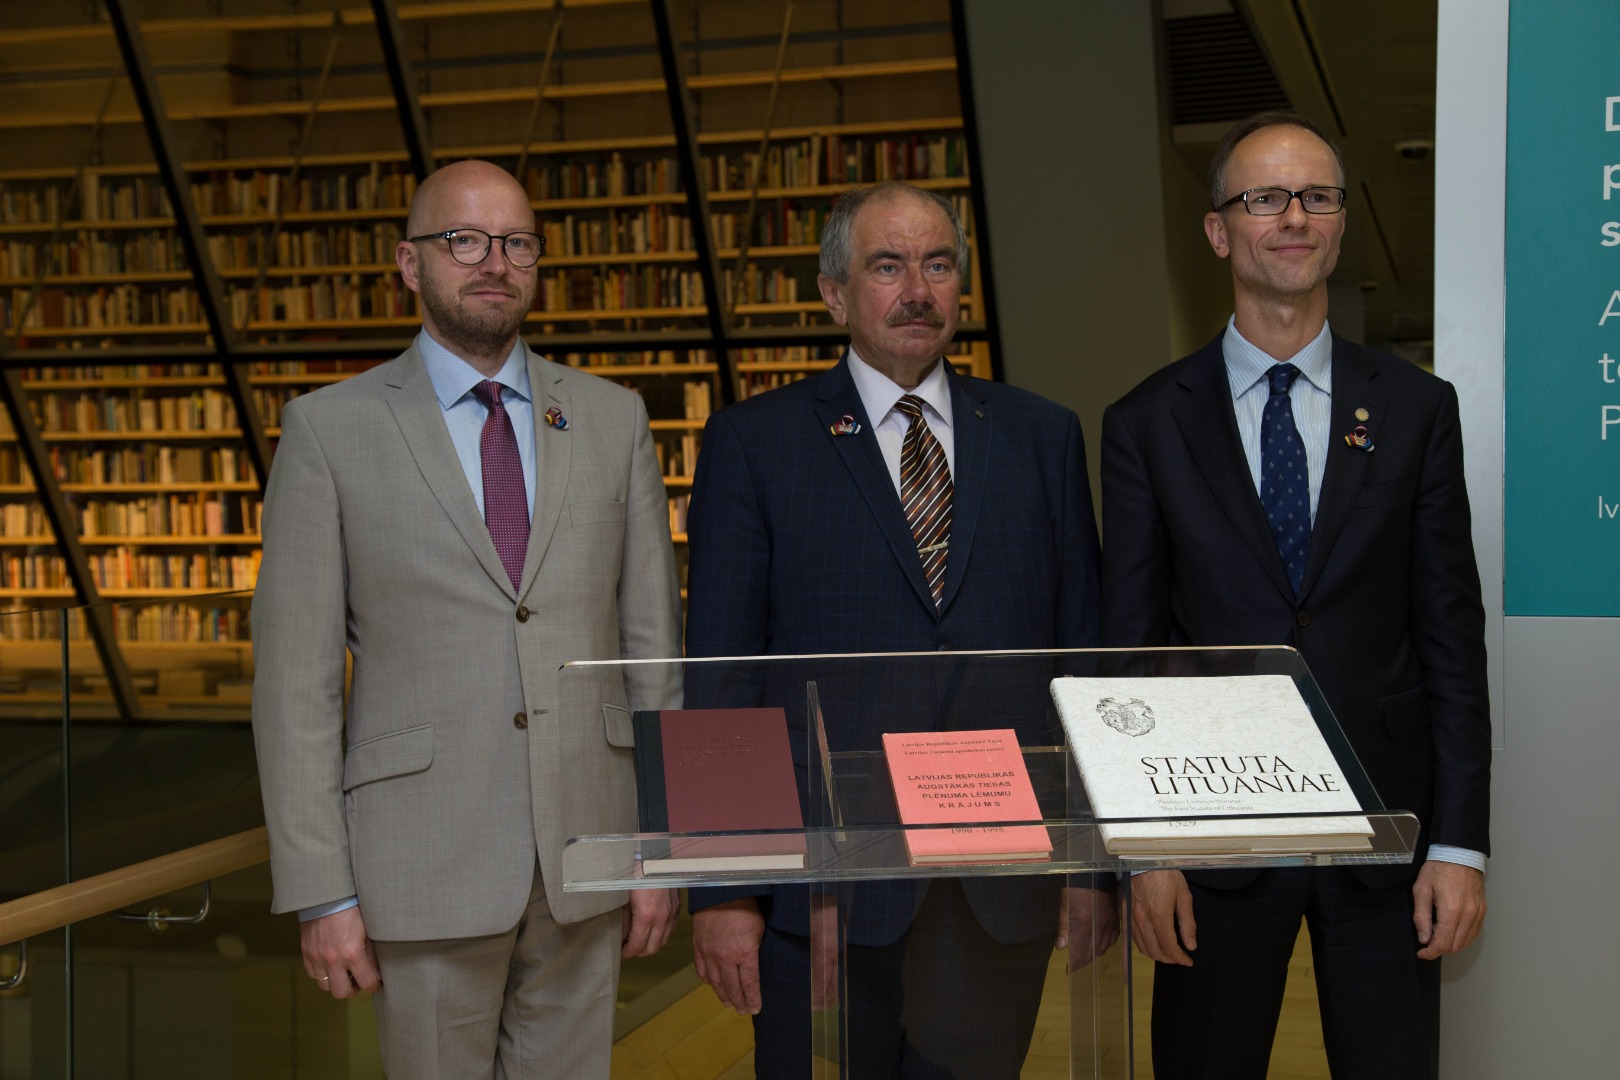 Chief Justices of the Supreme Courts of Baltic States and their donation to People's Bookshelf at the National Library of Latvia